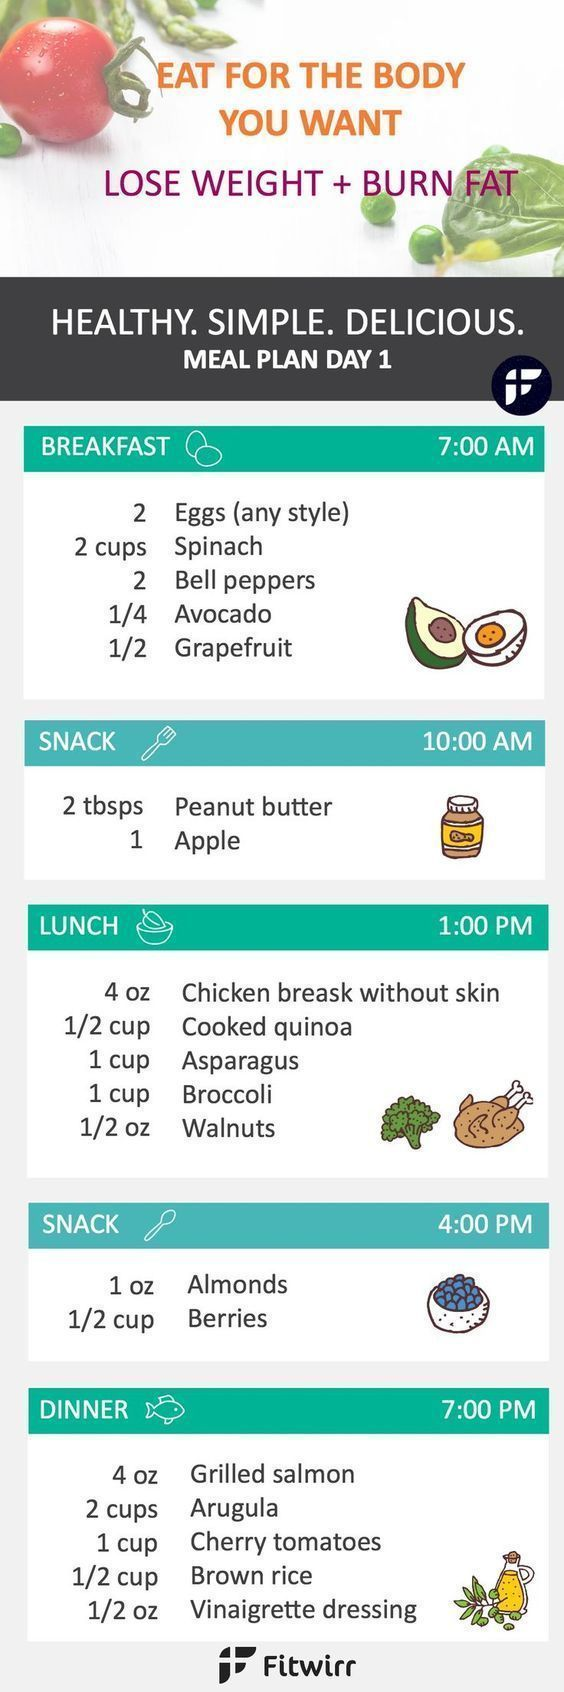 Healthy meal plan to help you lose weight and burn fat. 2 week diet cleanse